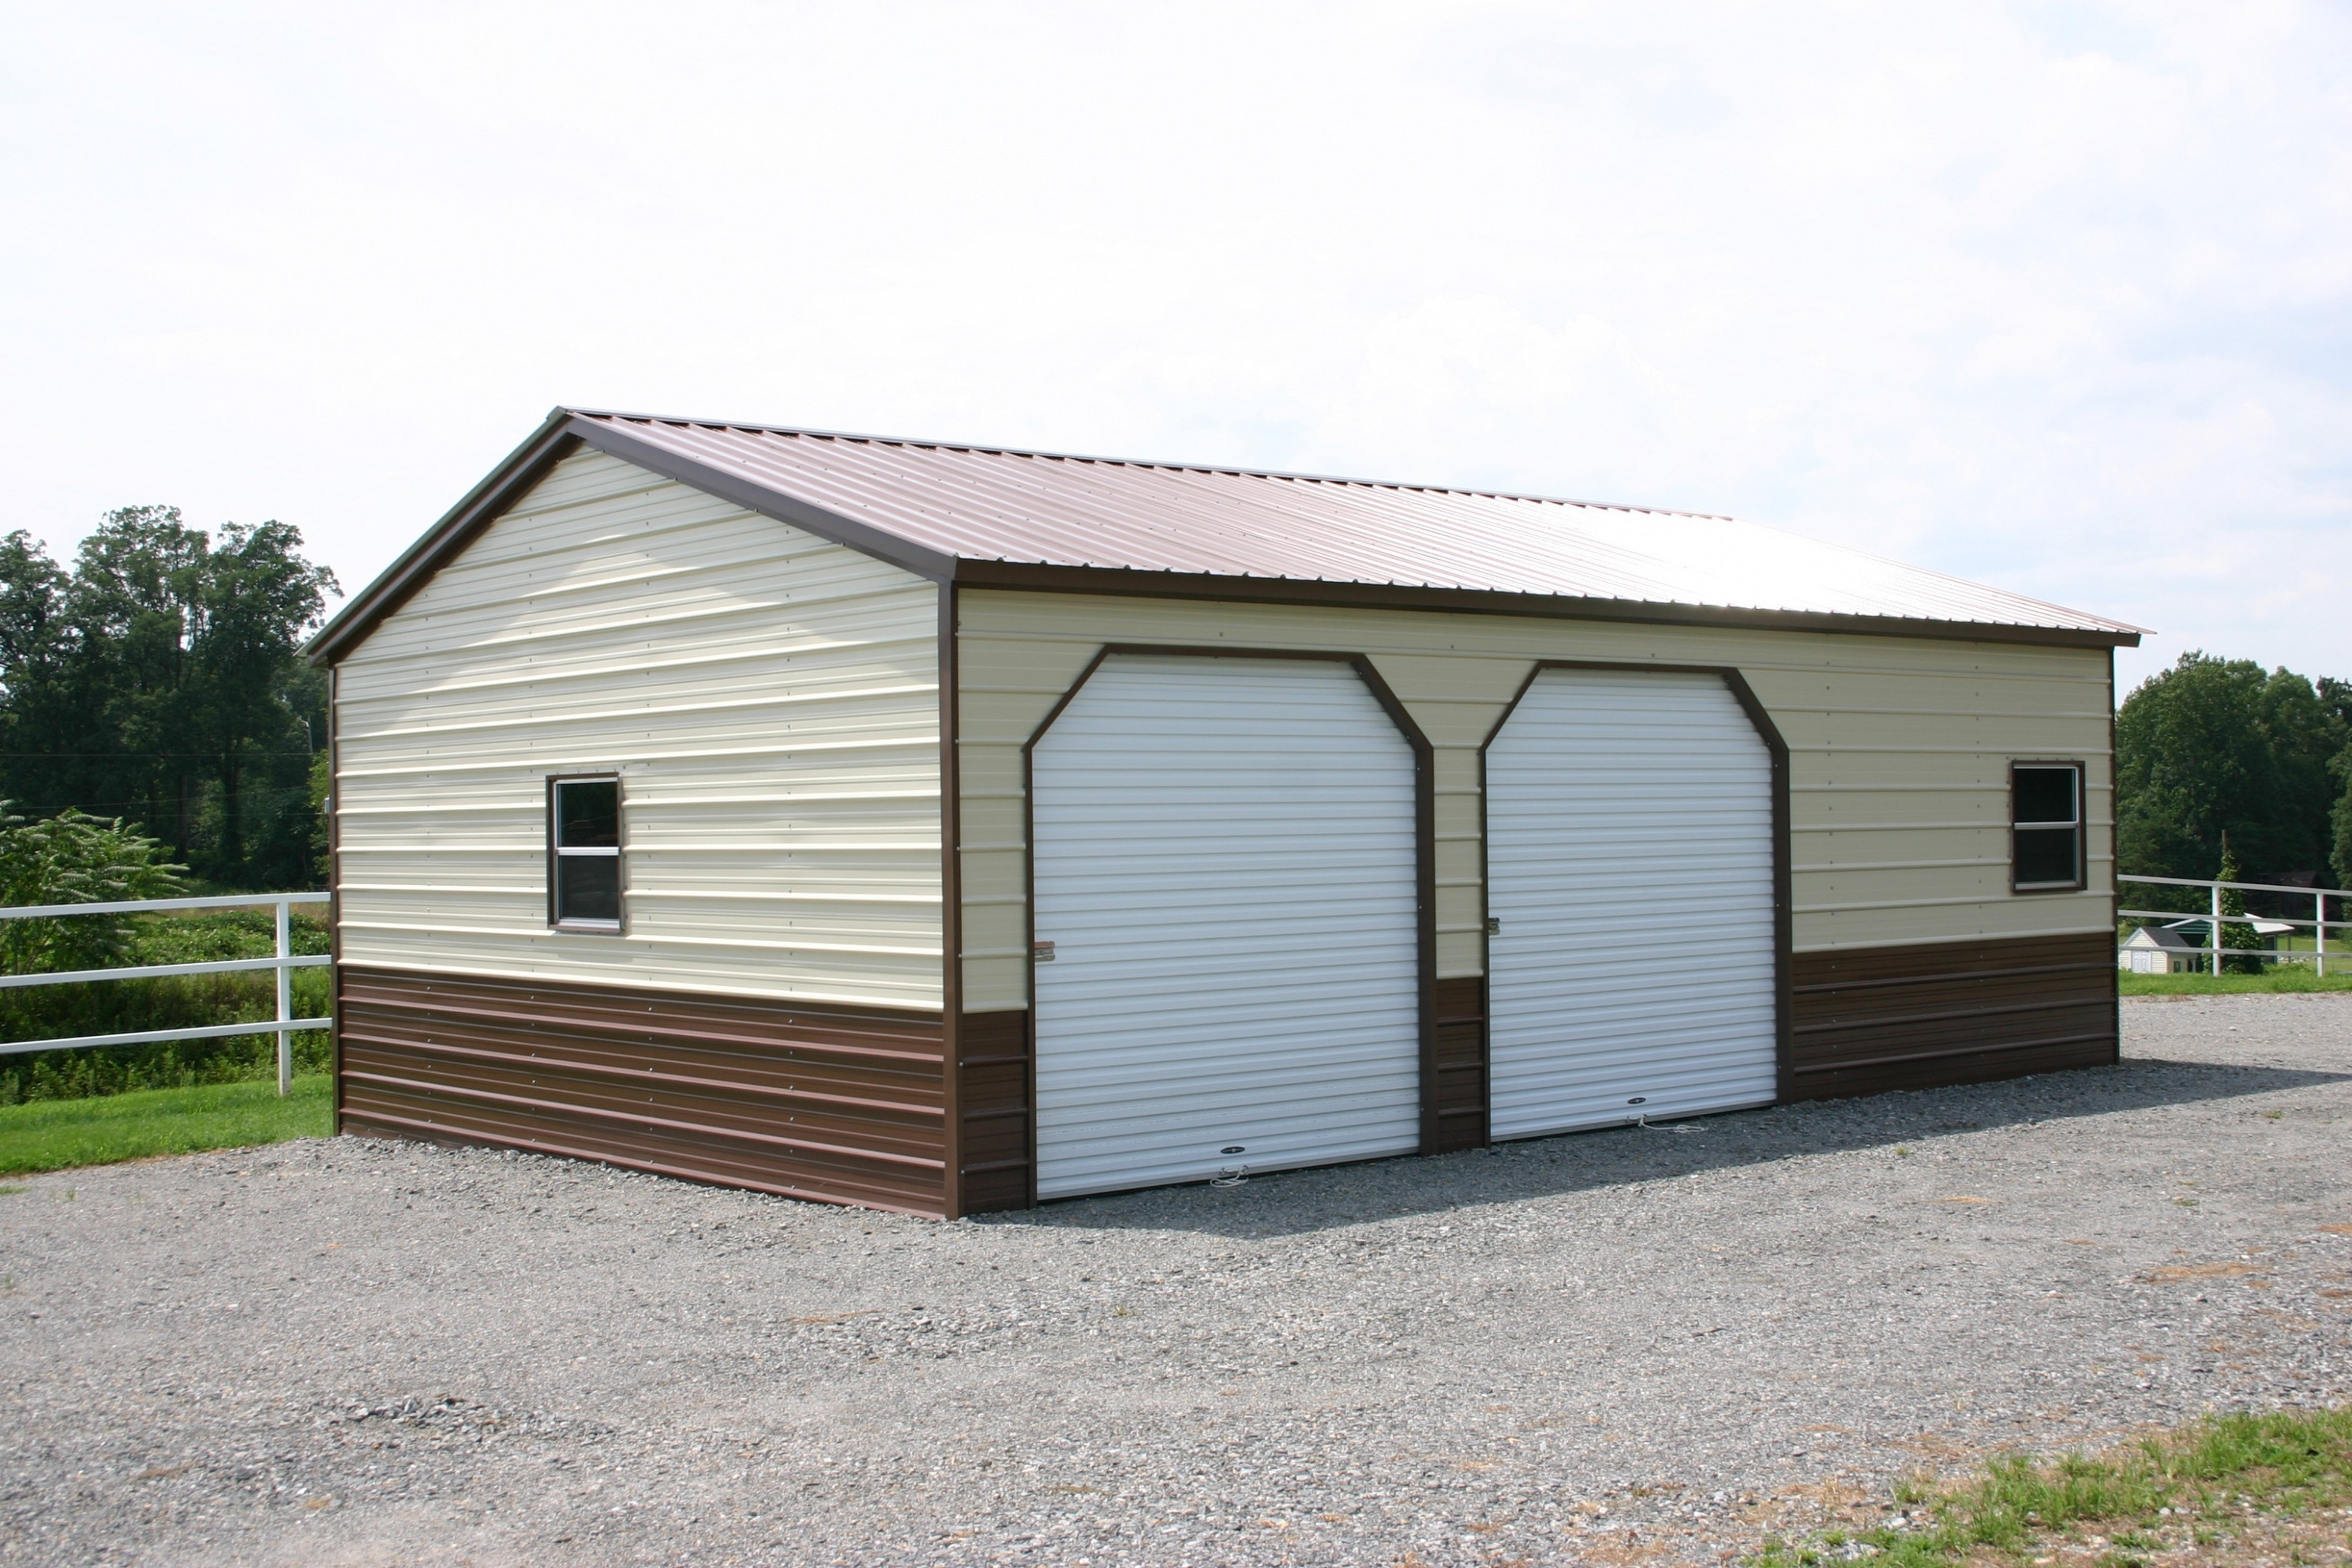 Portable Storage Buildings Sheds Carports Metal Steel Garages With ..